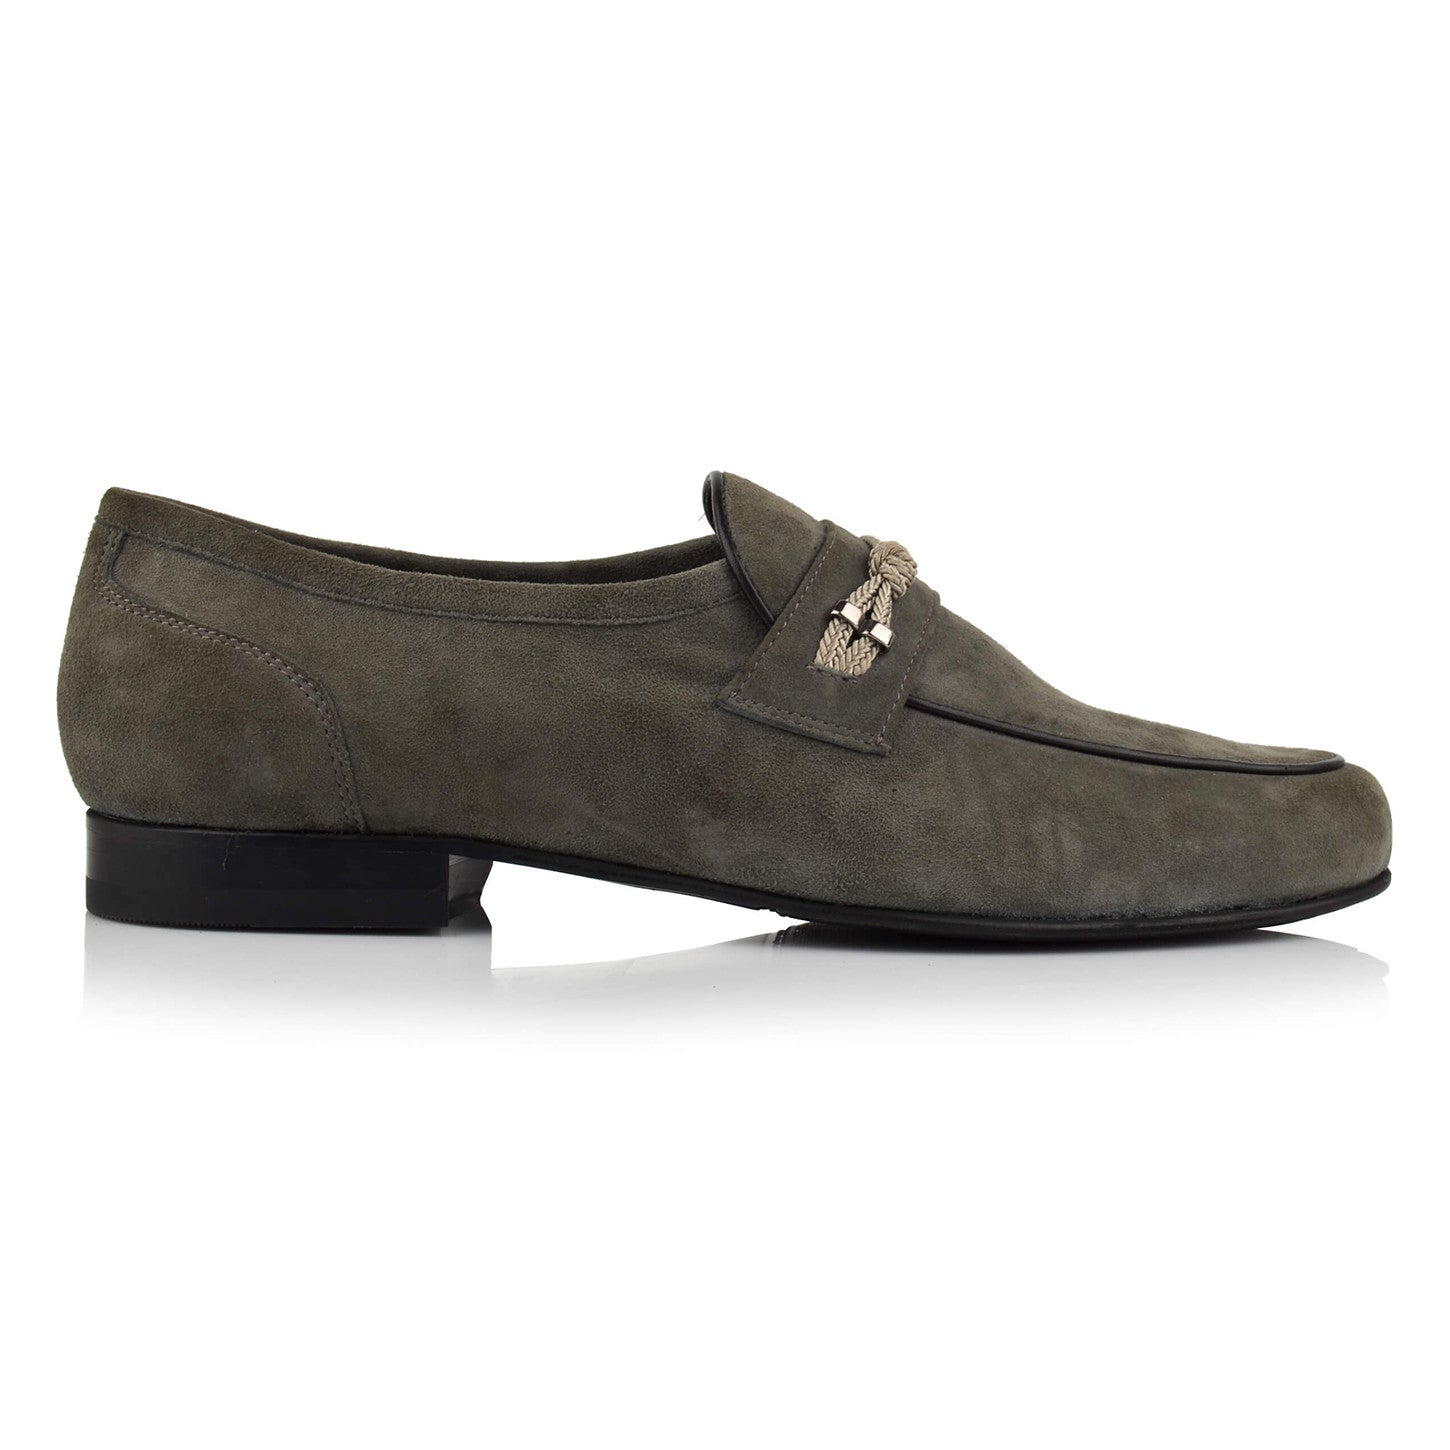 LM451 - Language Muffle Men's Dress Grey Loafers